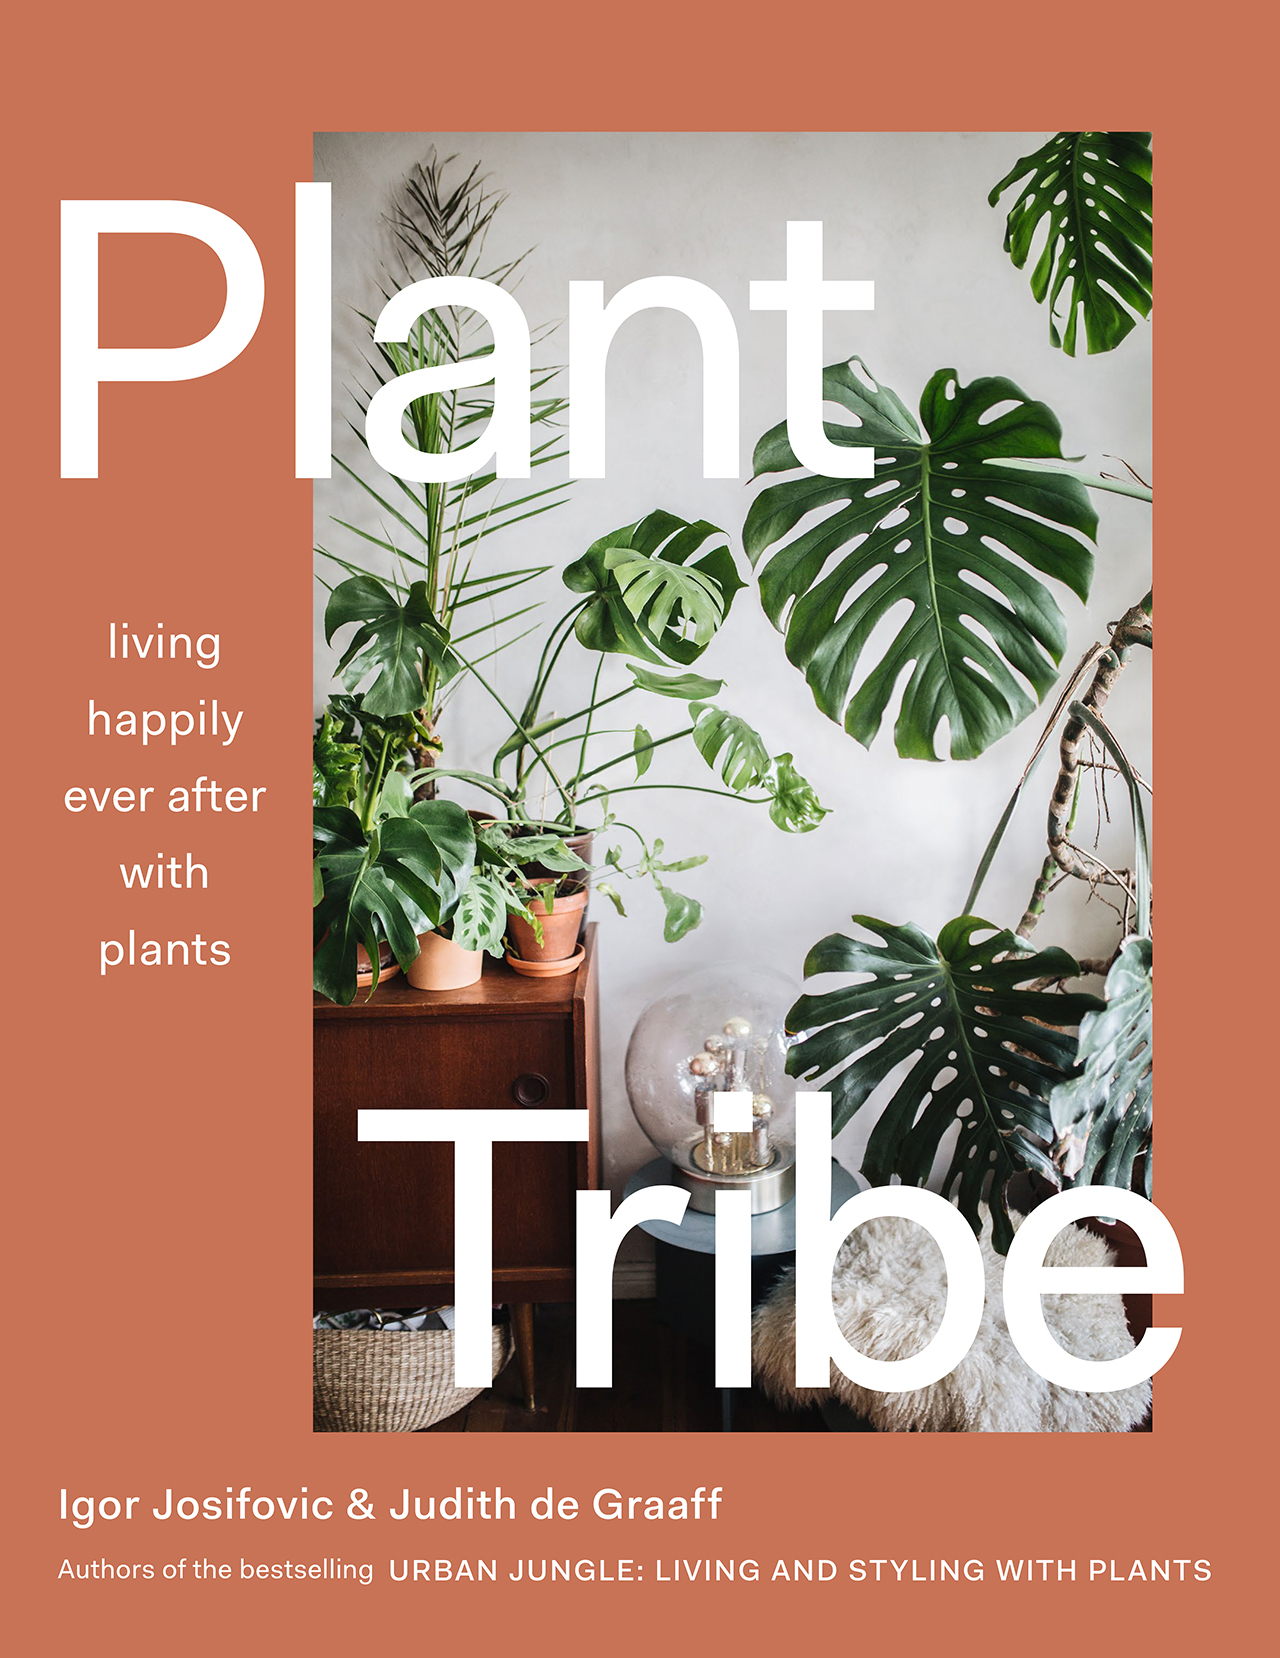 PLANT TRIBE (Living happily ever after with plants) by Igor Josifovic & Judith de Graaff. © ABRAMS Books.